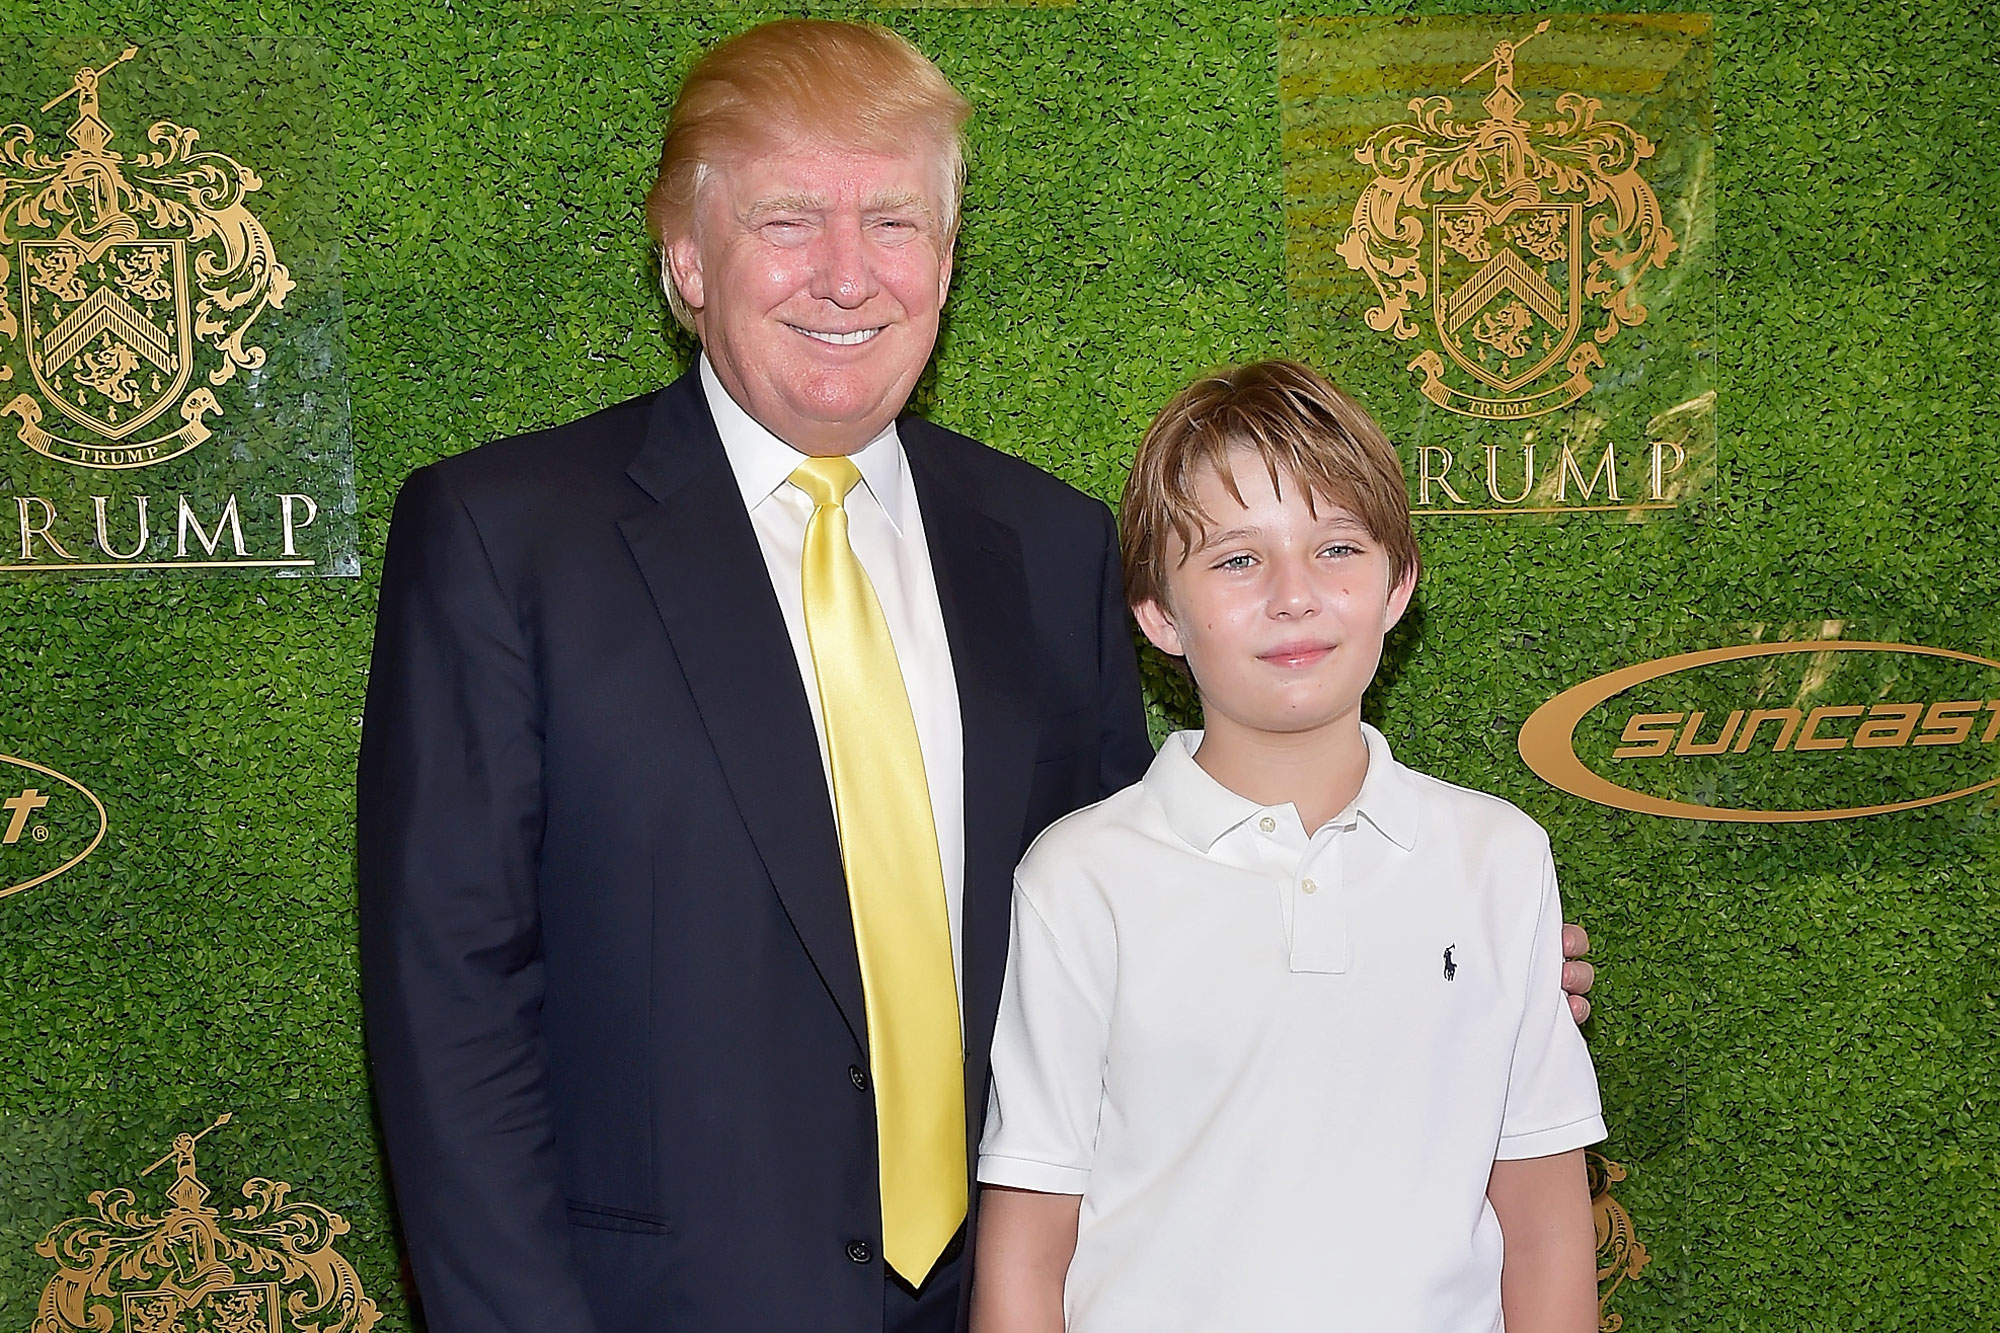 Trump Invitational Grand Prix Mar-a-Lago Club